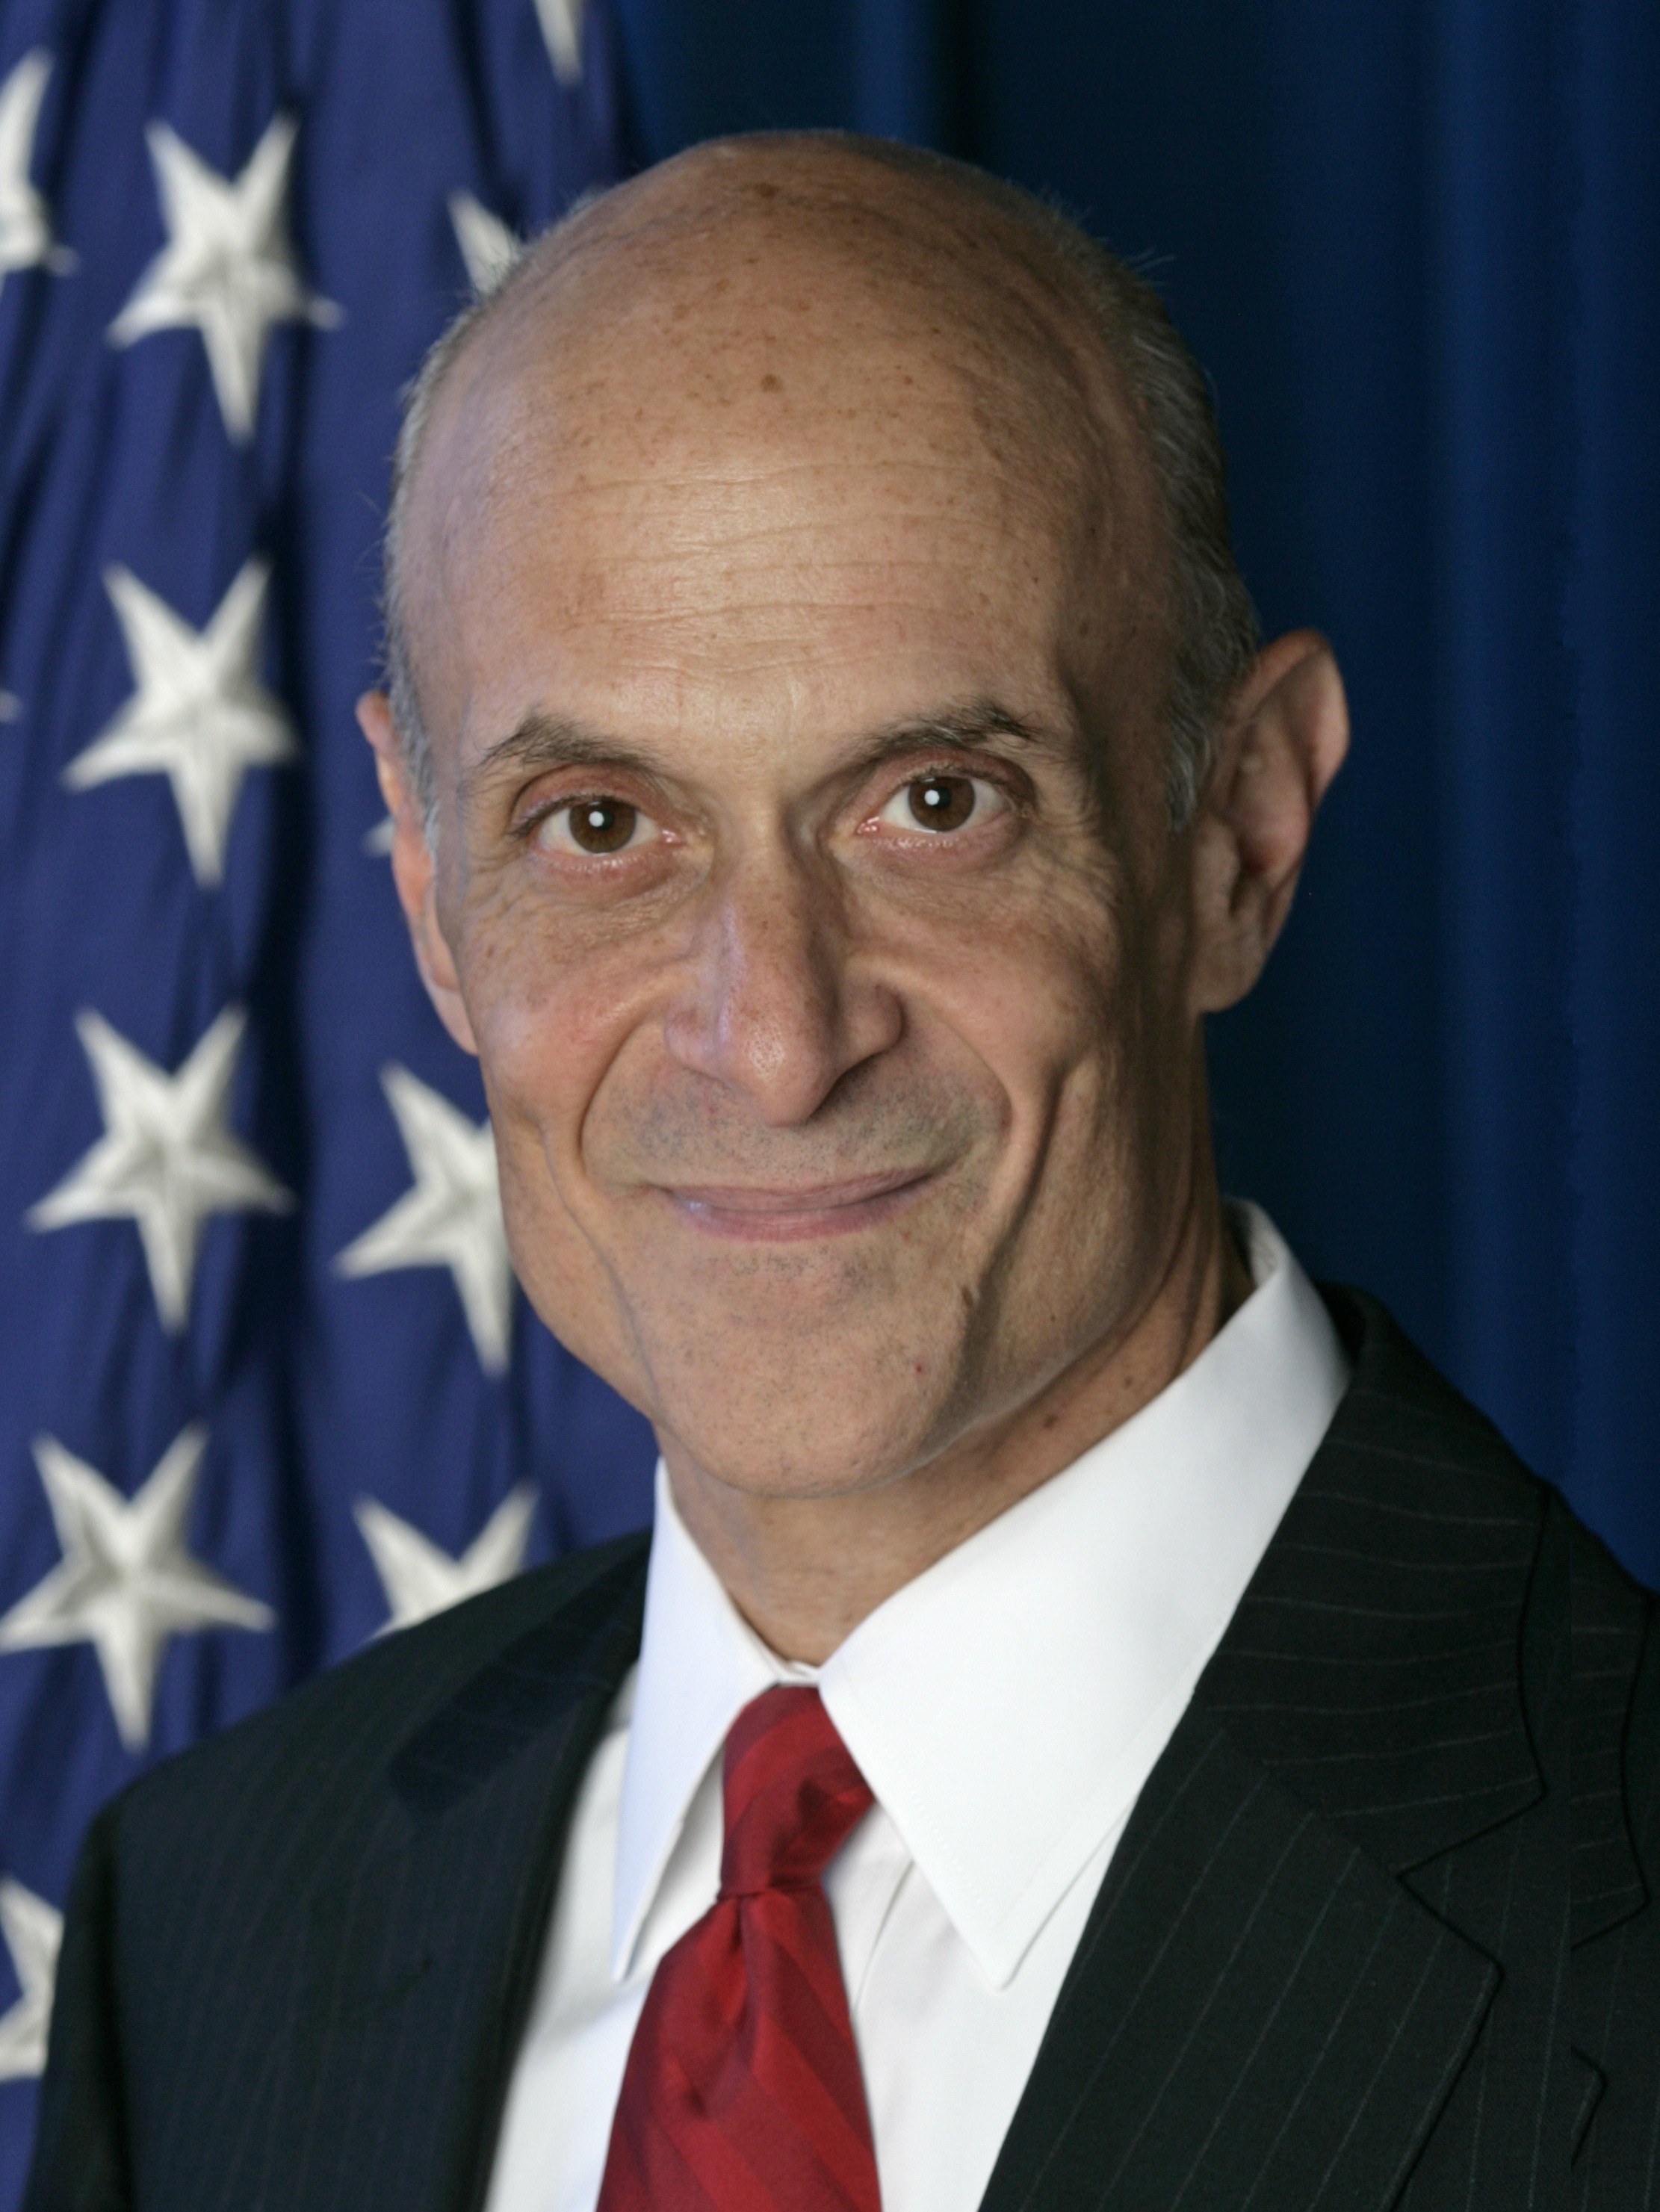 Photo of Michael Chertoff